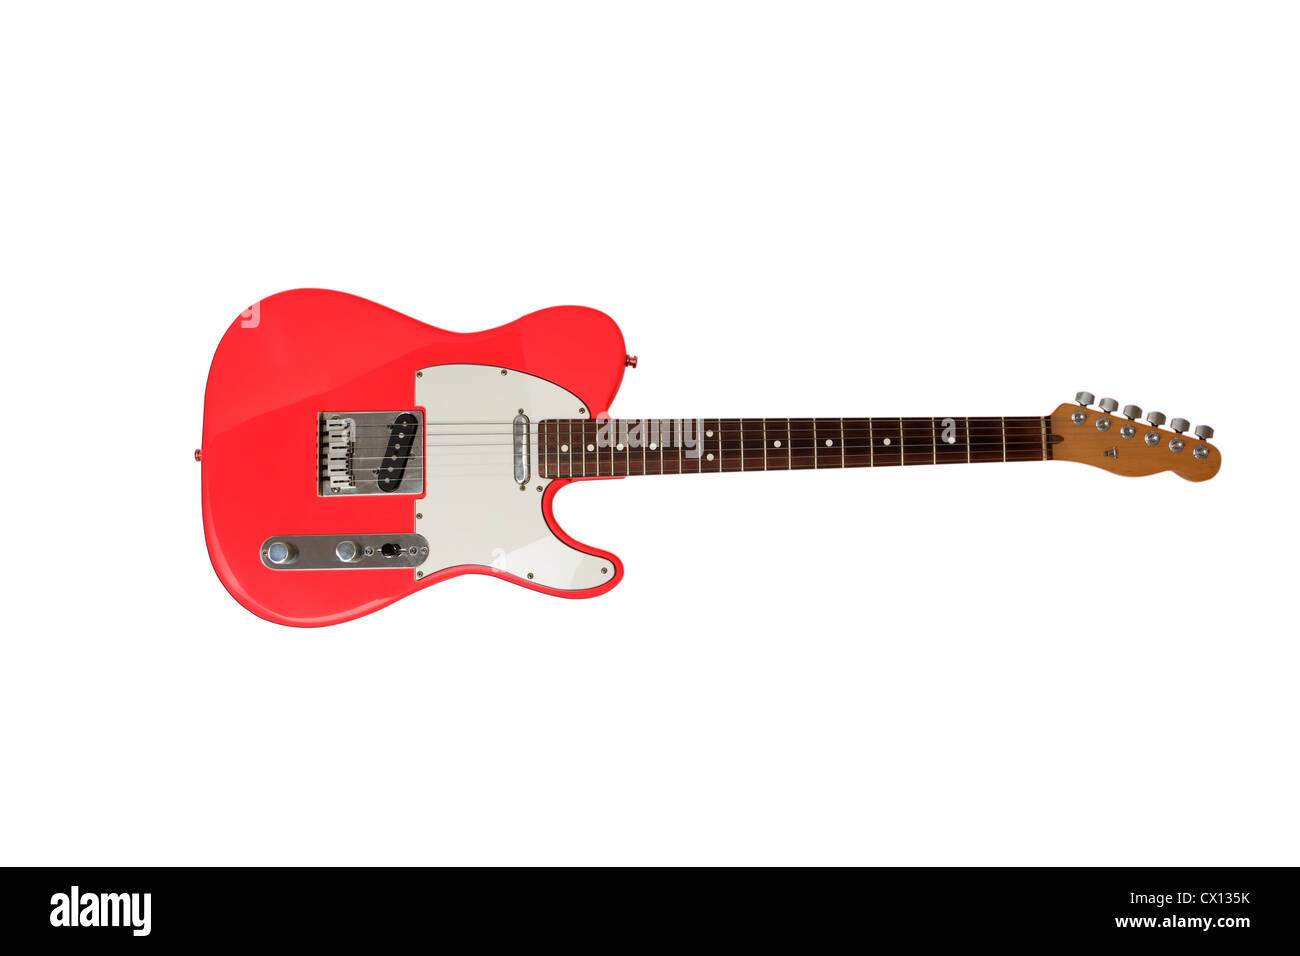 Red electric guitar - Stock Image